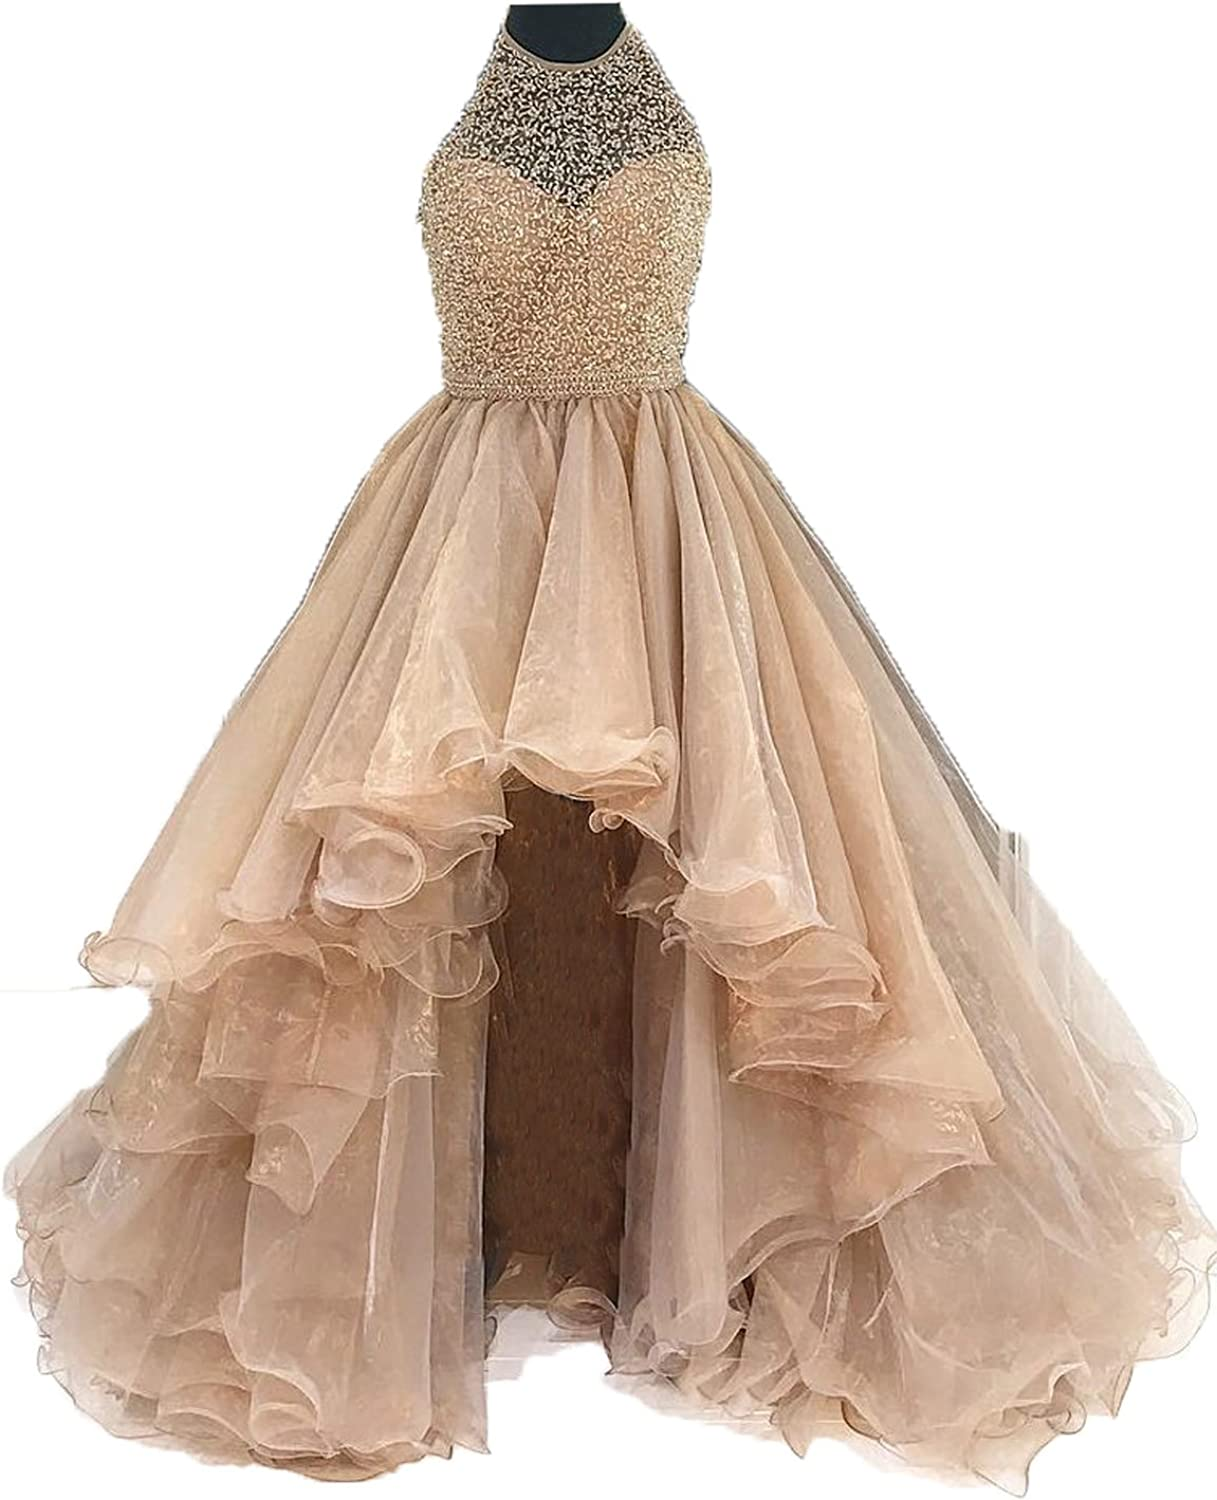 Siaoryne A Line Halter Beading Prom Dresses High Low for Juniors Corset Back Nude Pink 18W